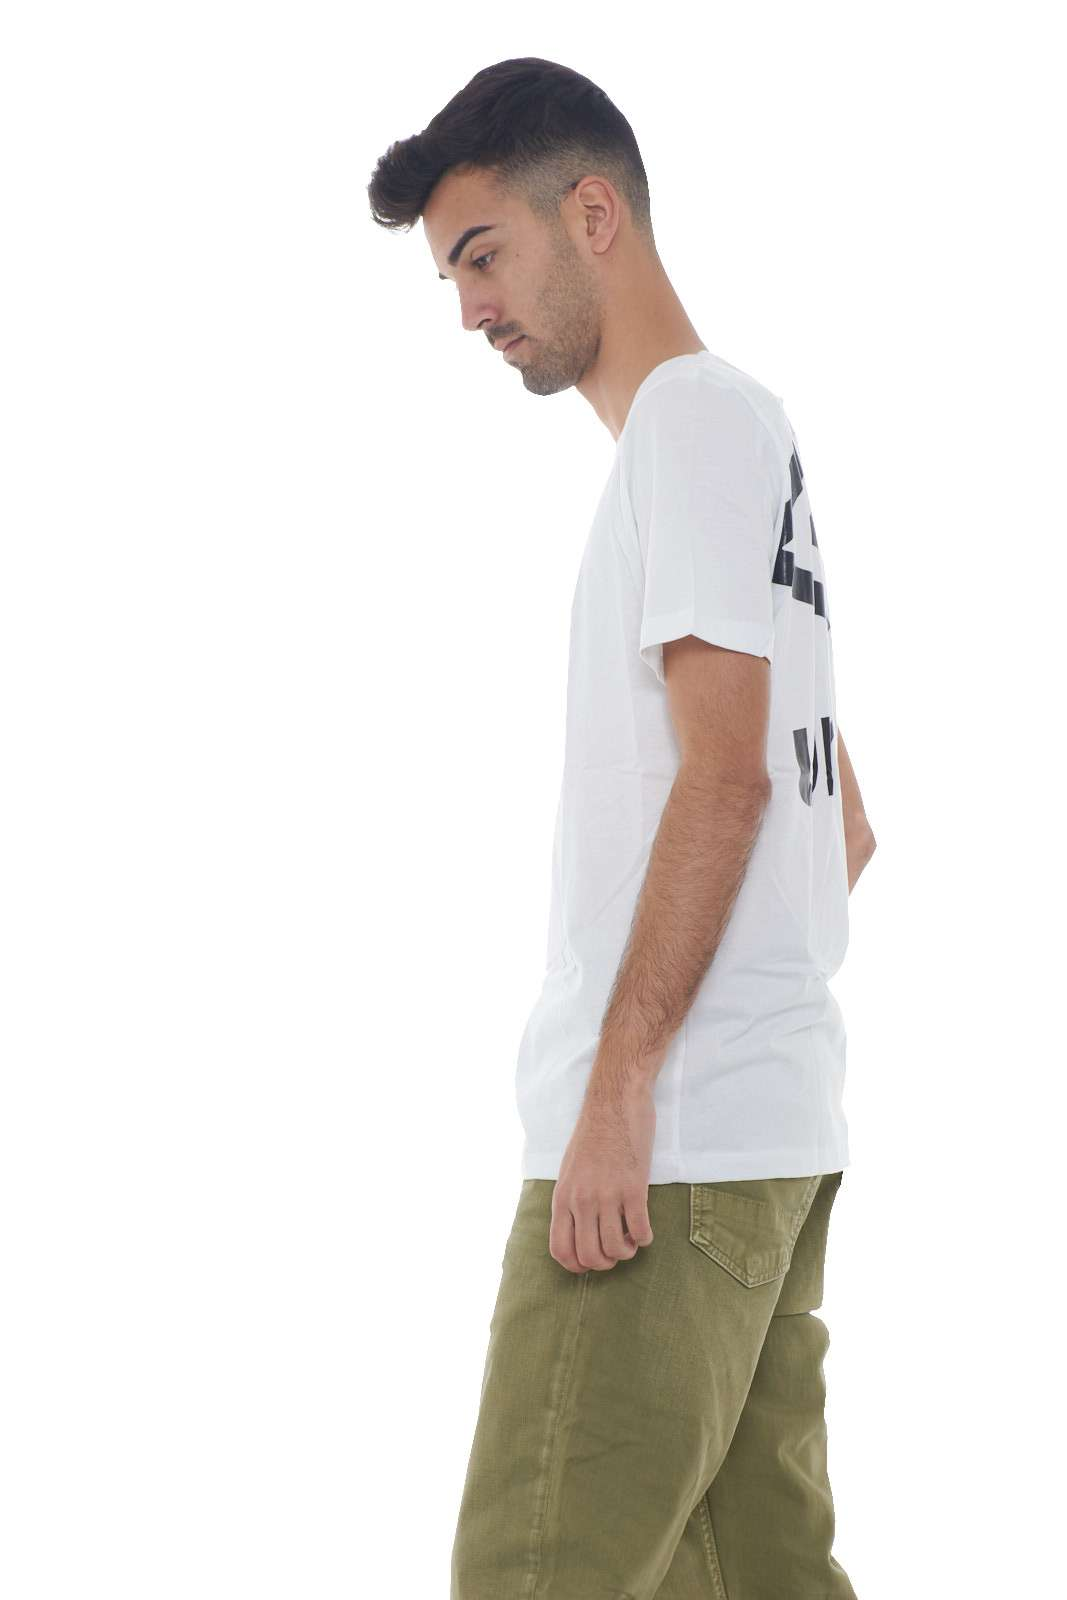 https://www.parmax.com/media/catalog/product/a/i/AI-outlet_parmax-t-shirt-uomo-Umbro-19ETPU0183-B_2.jpg